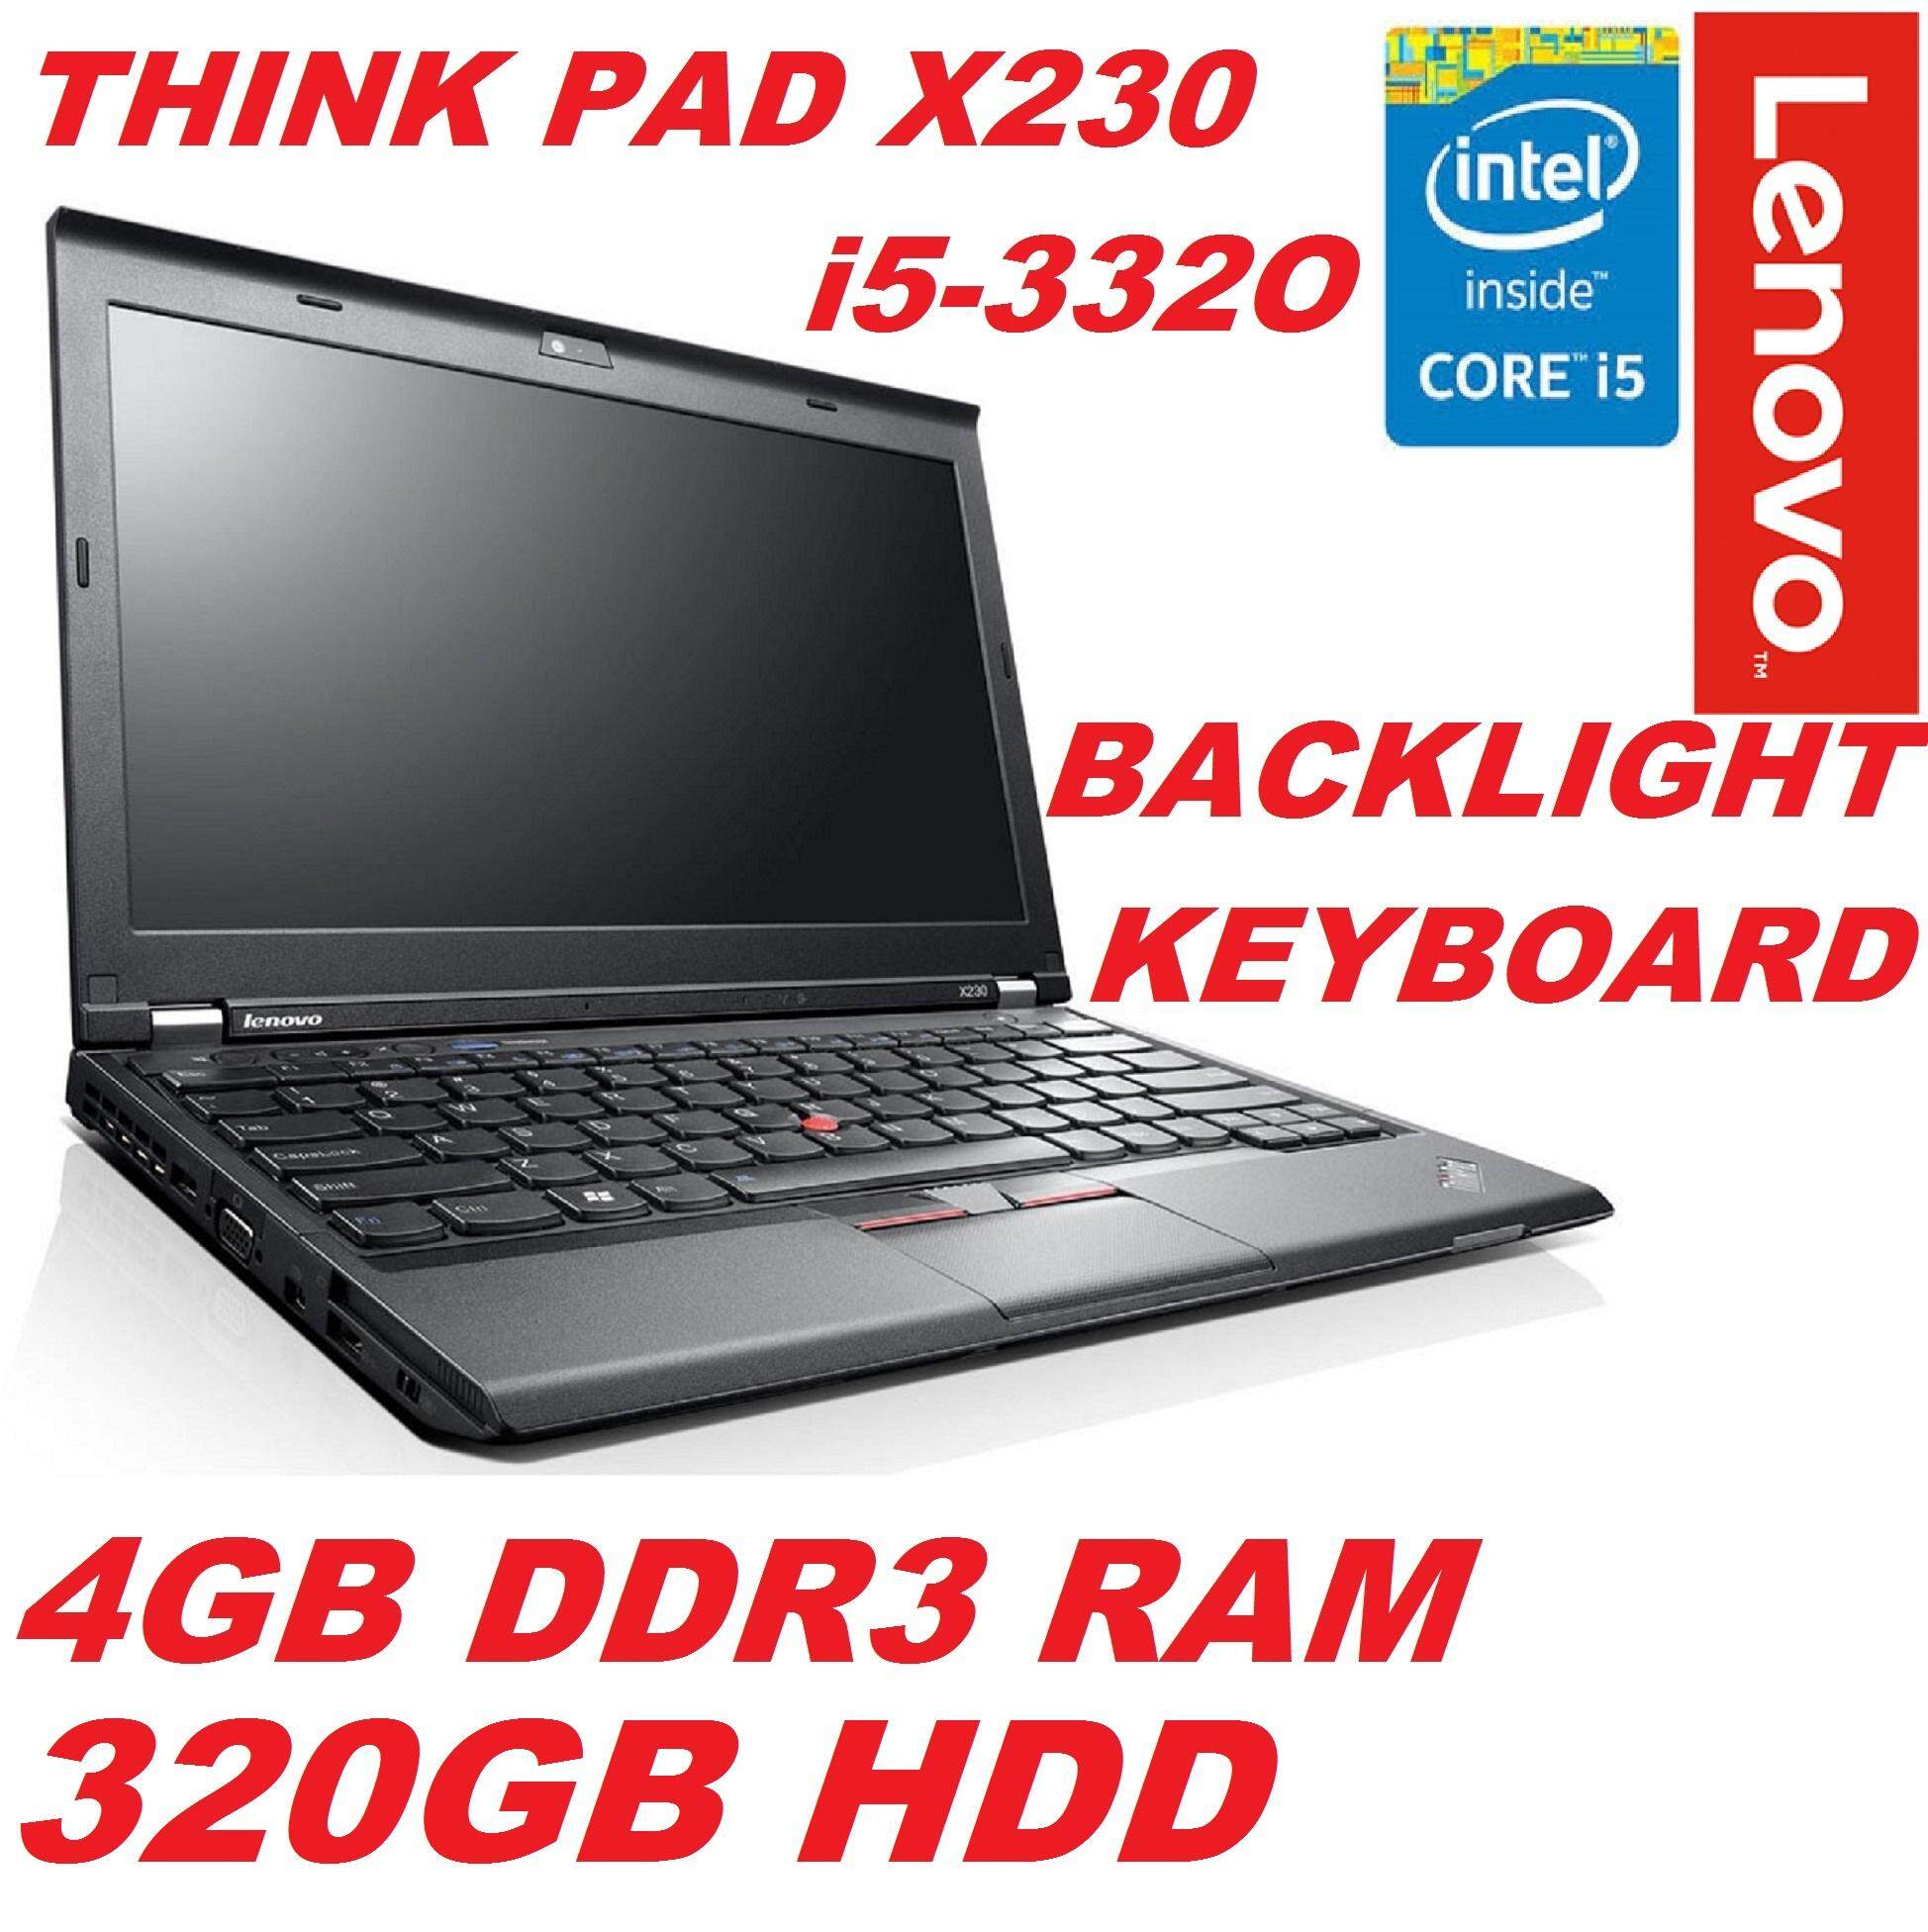 (REFURBISHED) LENOVO THINK PAID  X230 INTEL CORE i5 3RD GEN/4GB DDR3 /320GB HDD/INTEL HD GRAPHIC/12.5 DISPLAY/W8 PRO(Backlit Keyboard) Malaysia